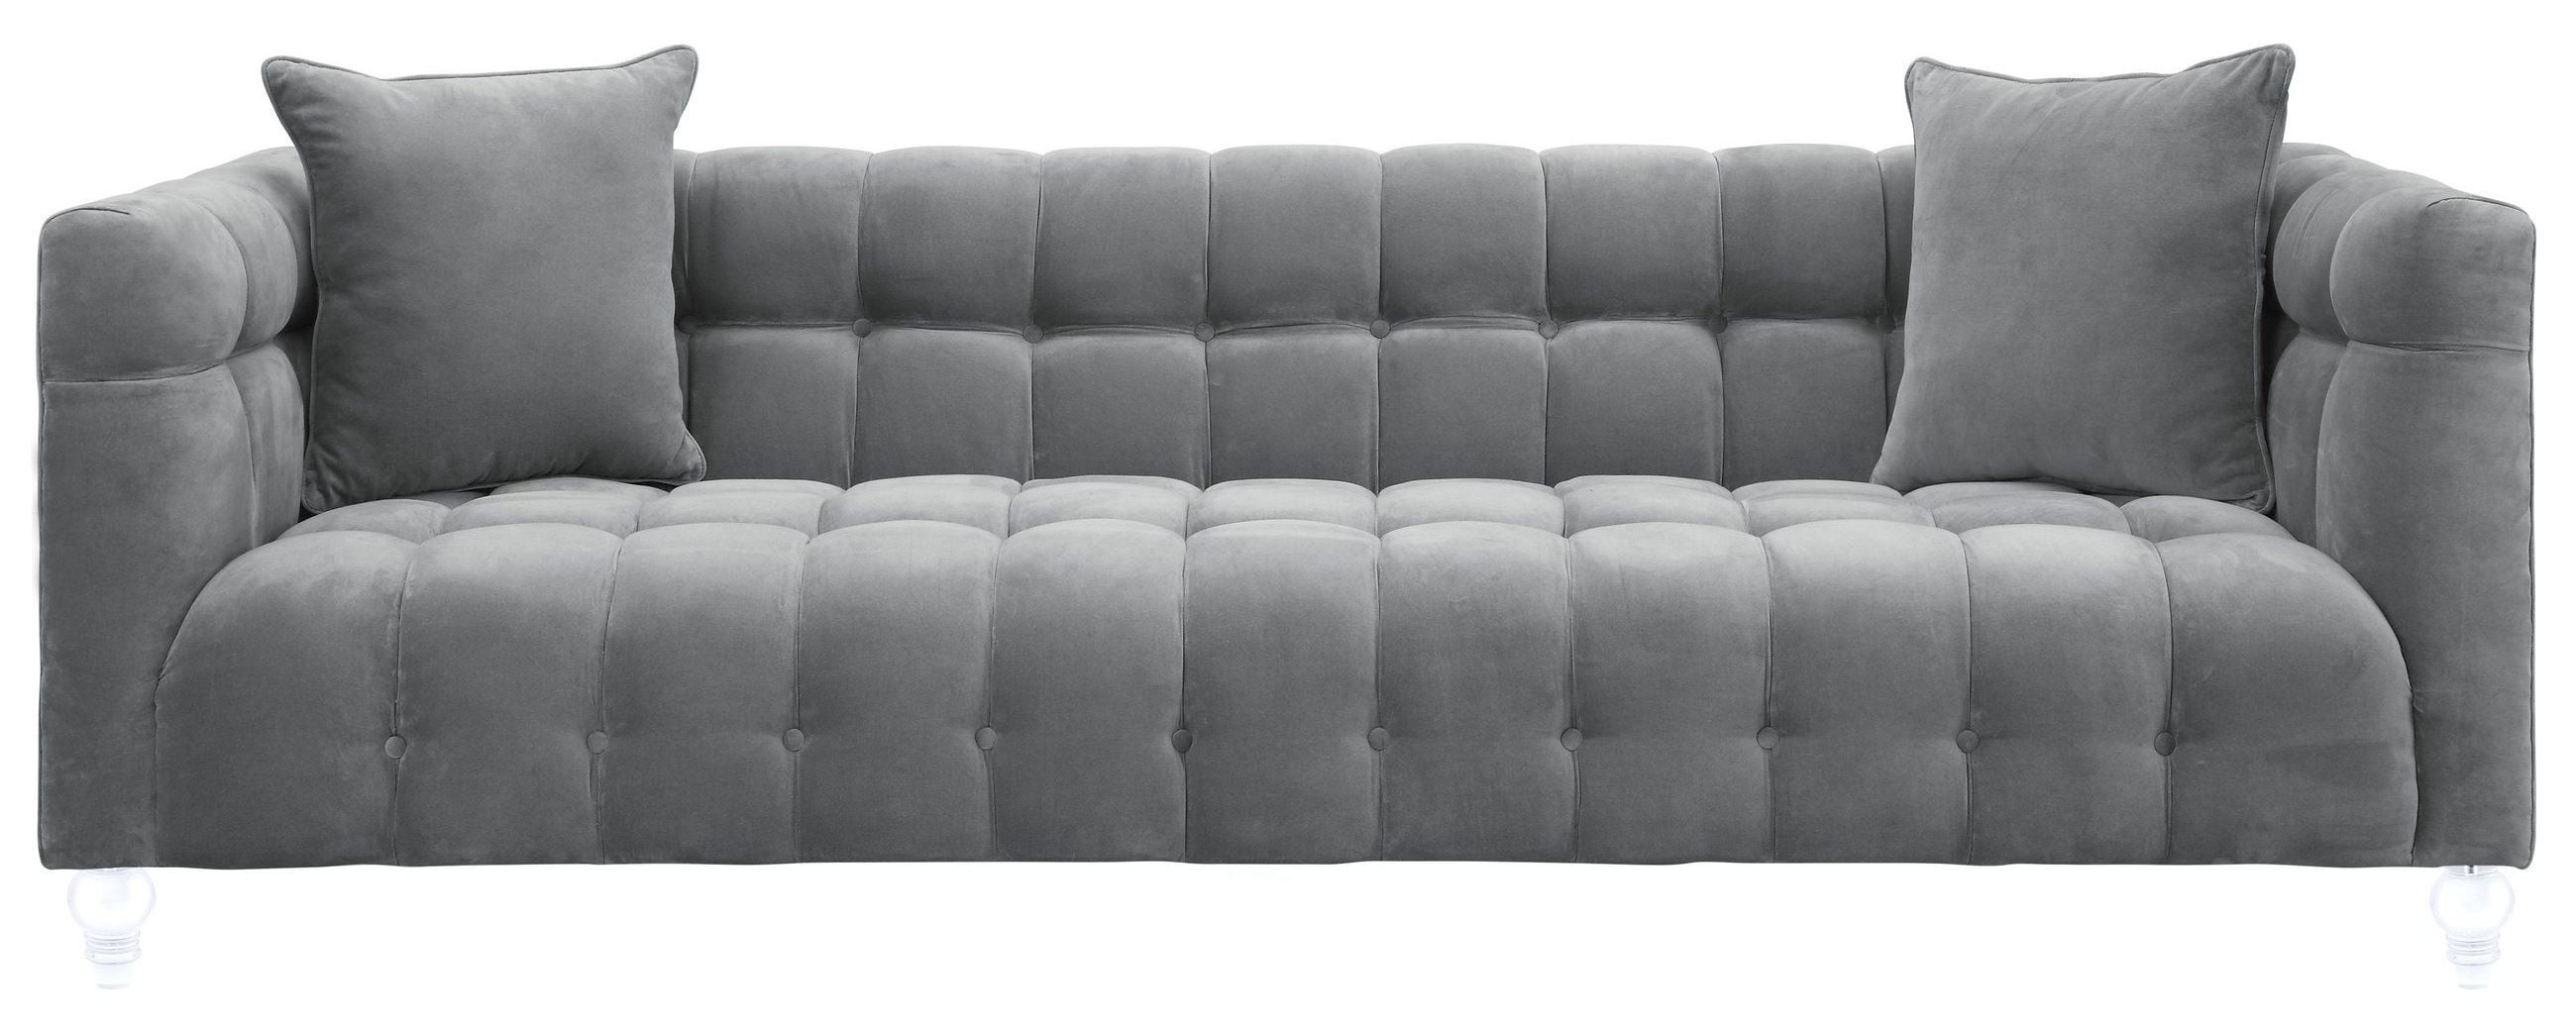 Wonderful Bea Grey Velvet Sofa